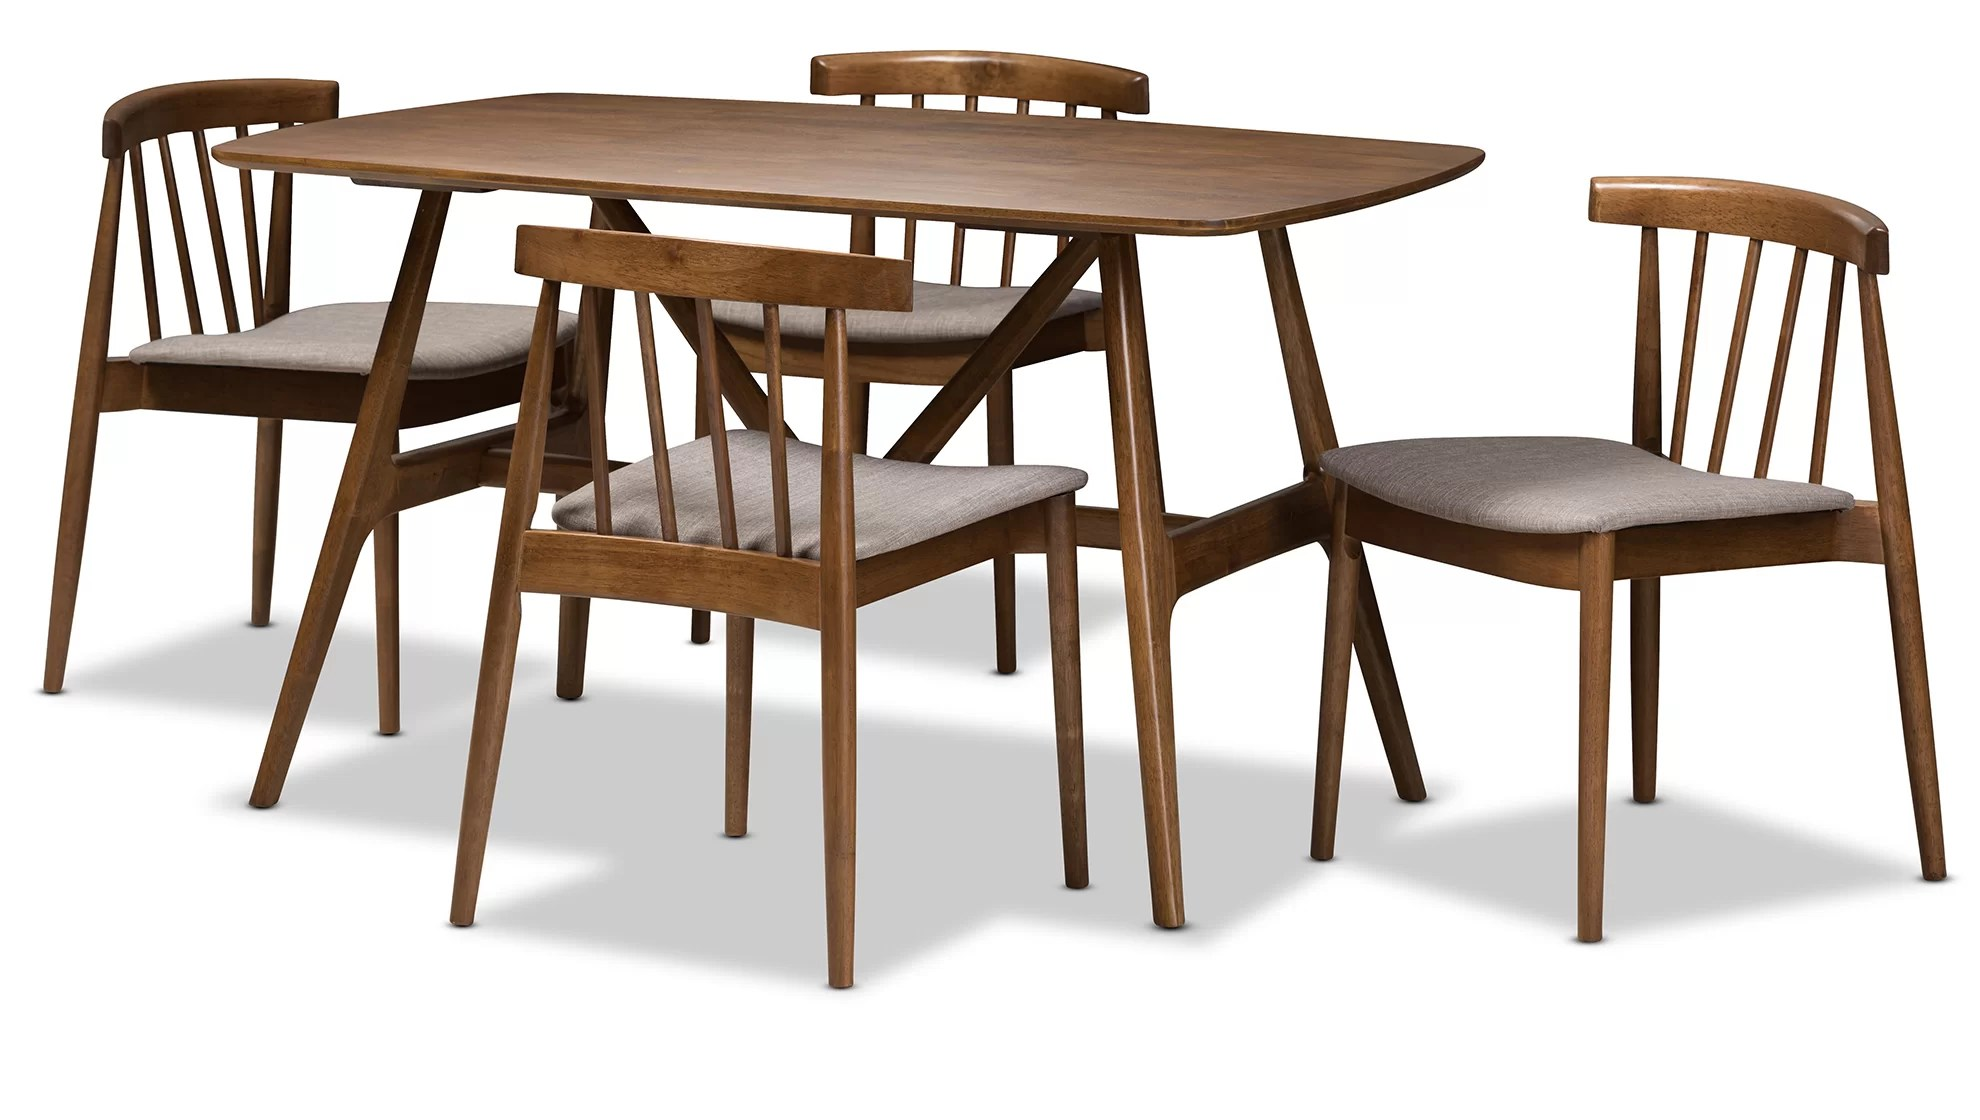 Modern Dining Set Watkin Mid Century Modern 5 Piece Breakfast Nook Dining Set